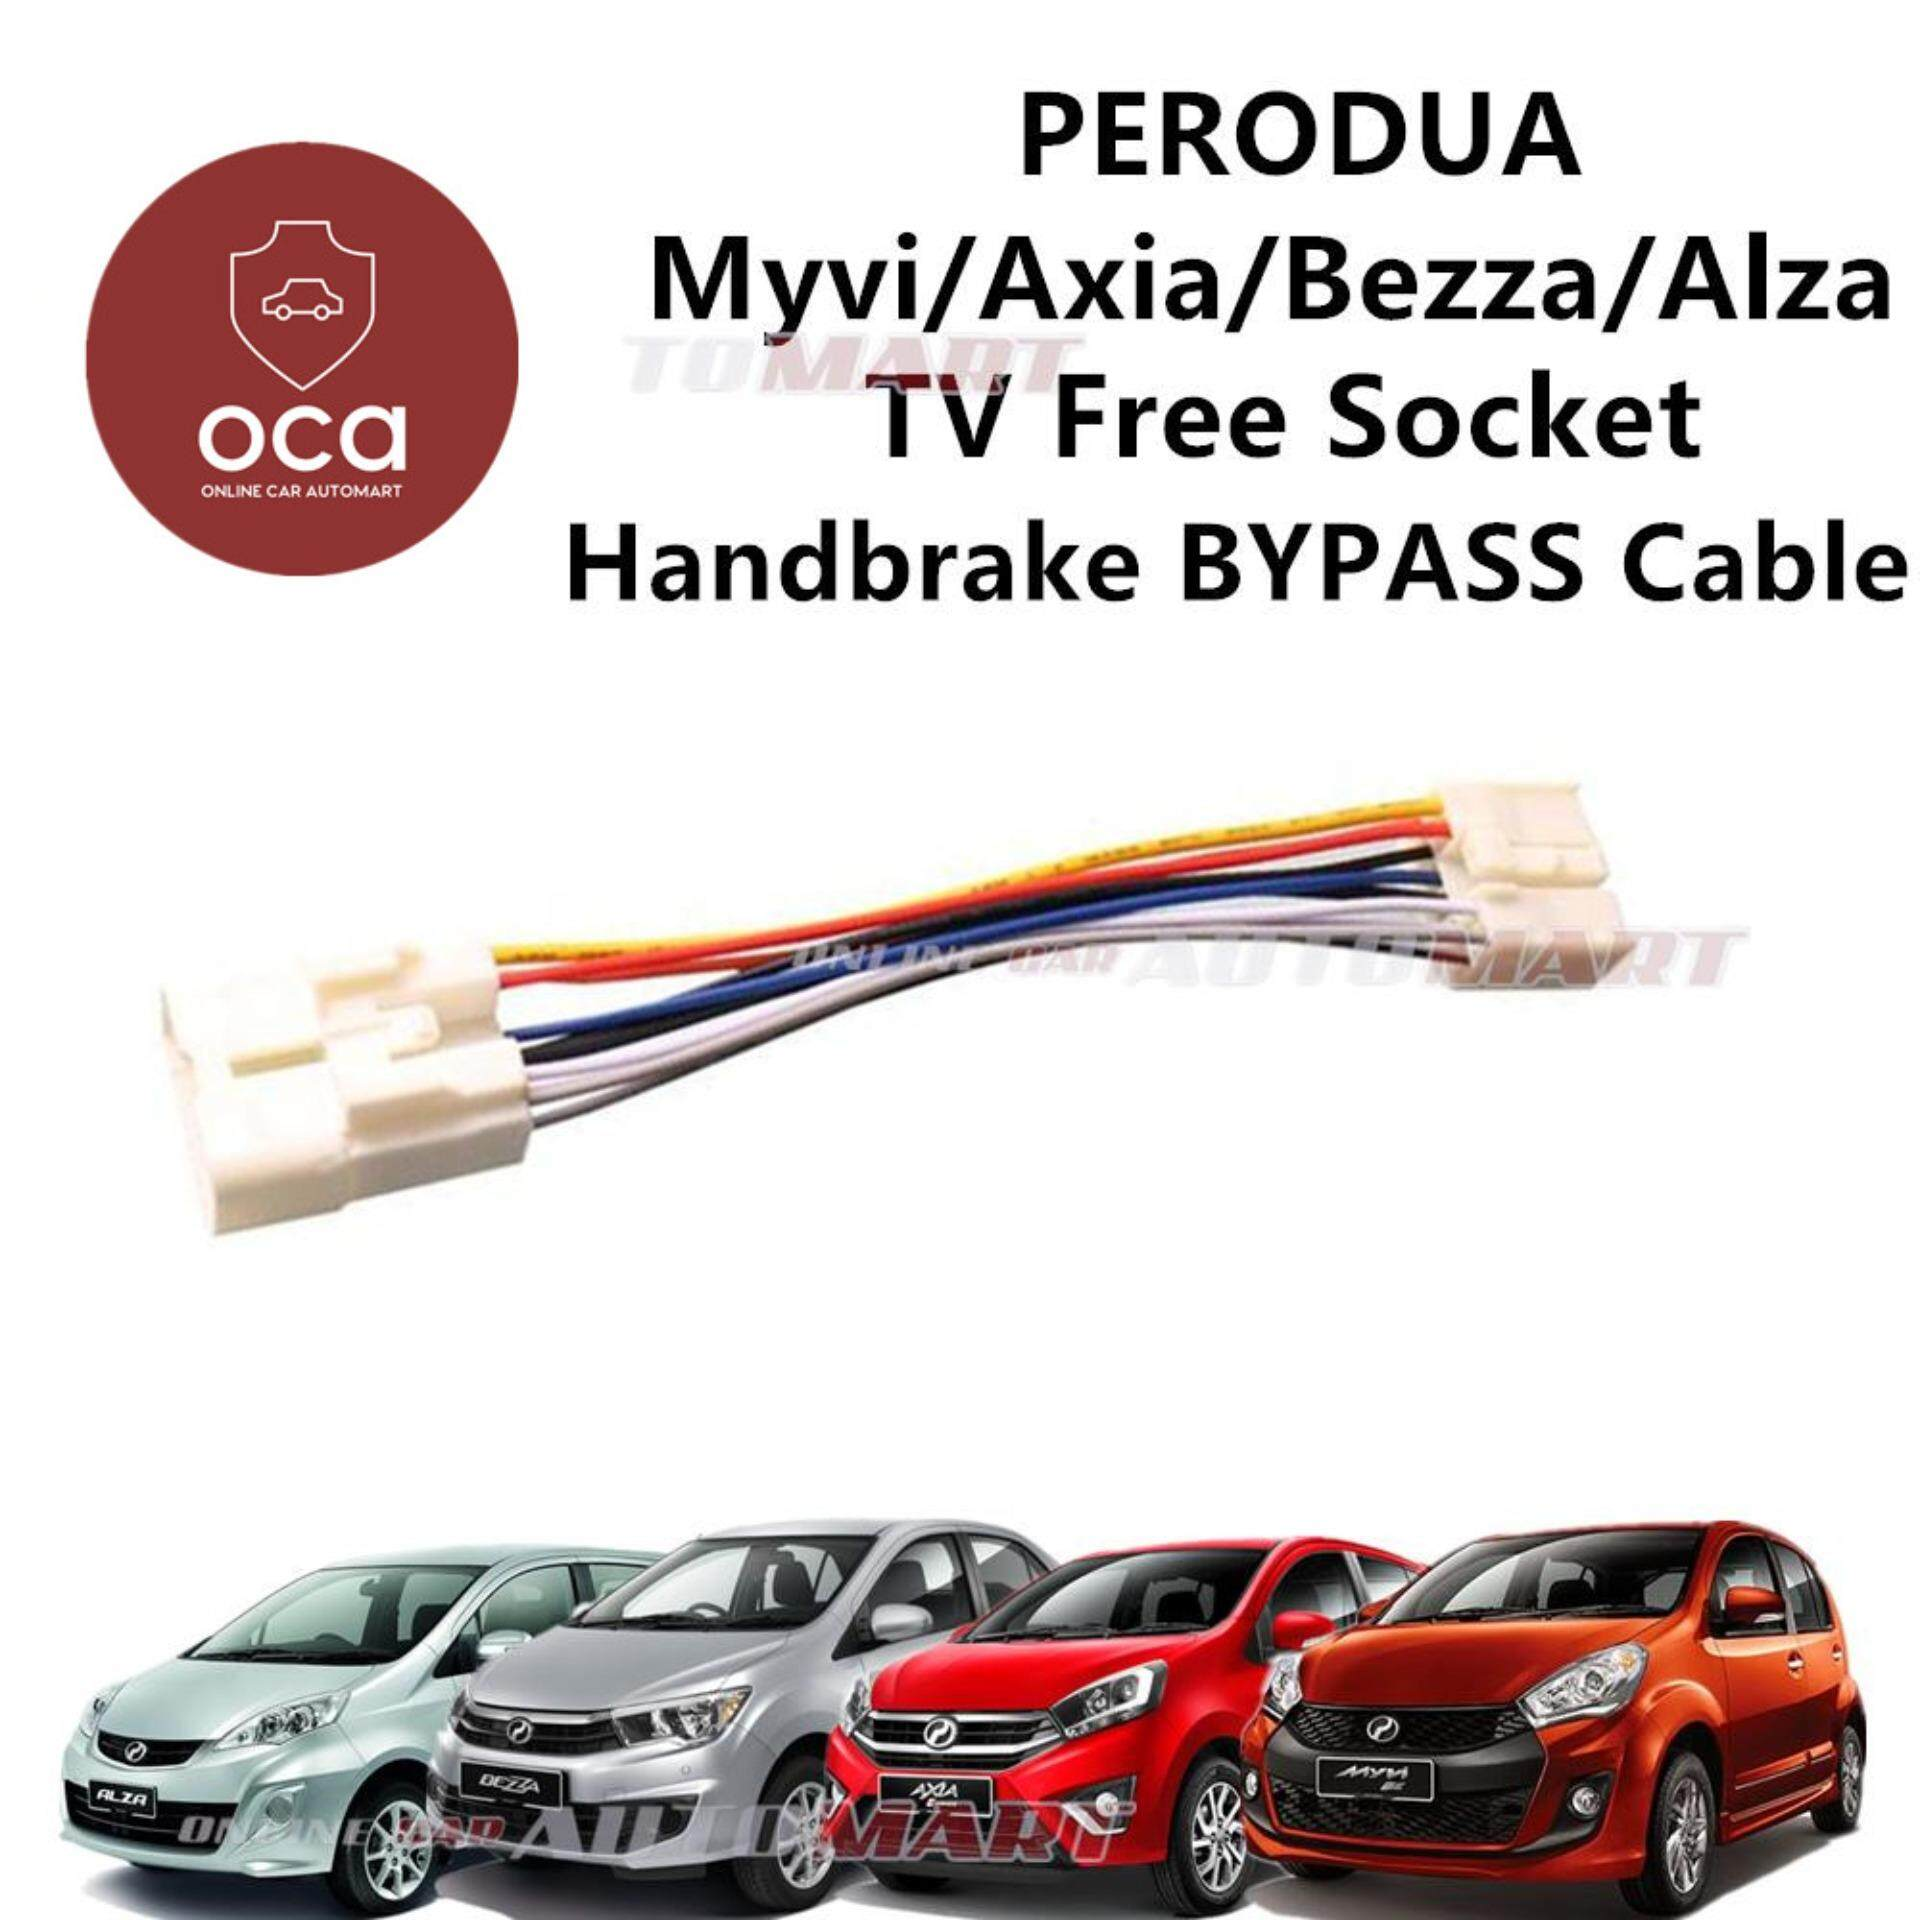 Perodua Axia/Alza/Bezza/Myvi/Aruz Plug n Play handbrake ByPass Car DVD Video While Driving In Motion (TV Free Socket)